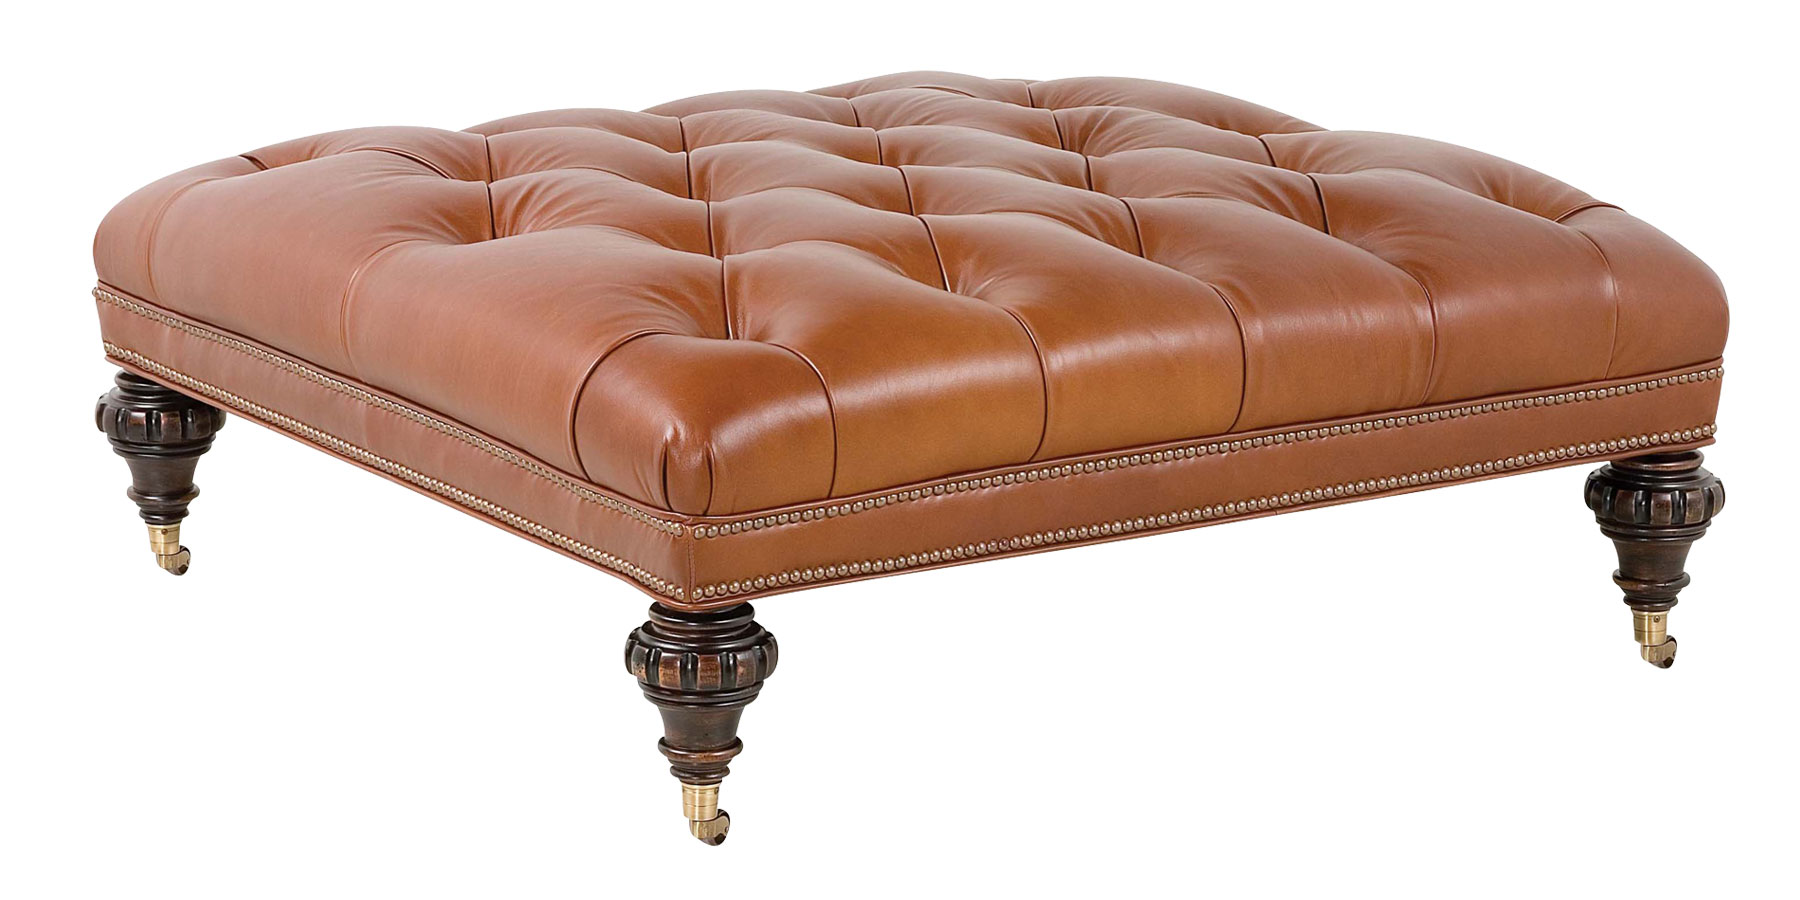 Brown Leather Coffee Table Ottoman Unique And Creative Tufted Leather Ottoman Coffee Table